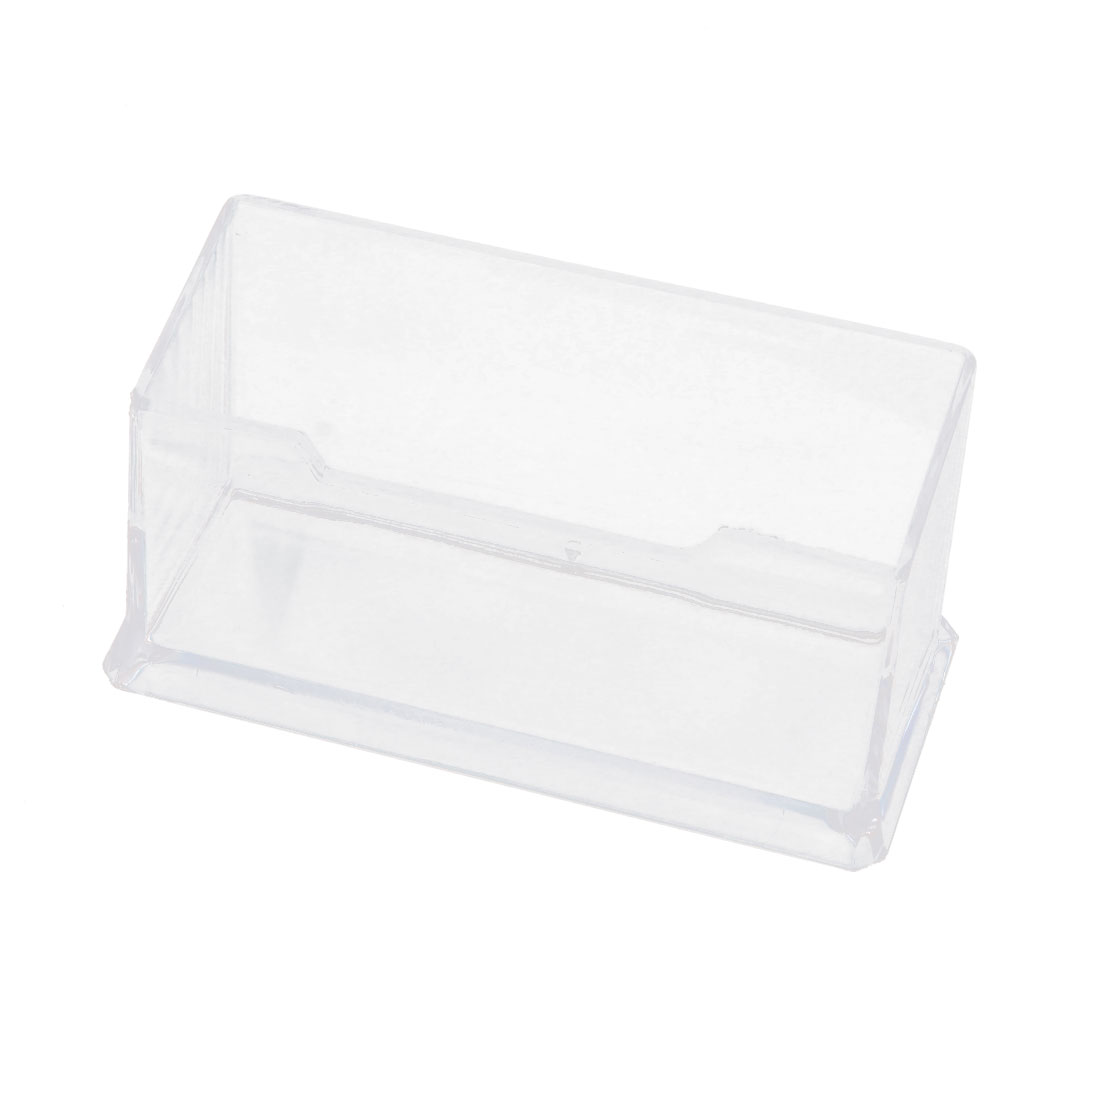 Company Office Plastic Business Name Holder Card Stand Display Stand Clear